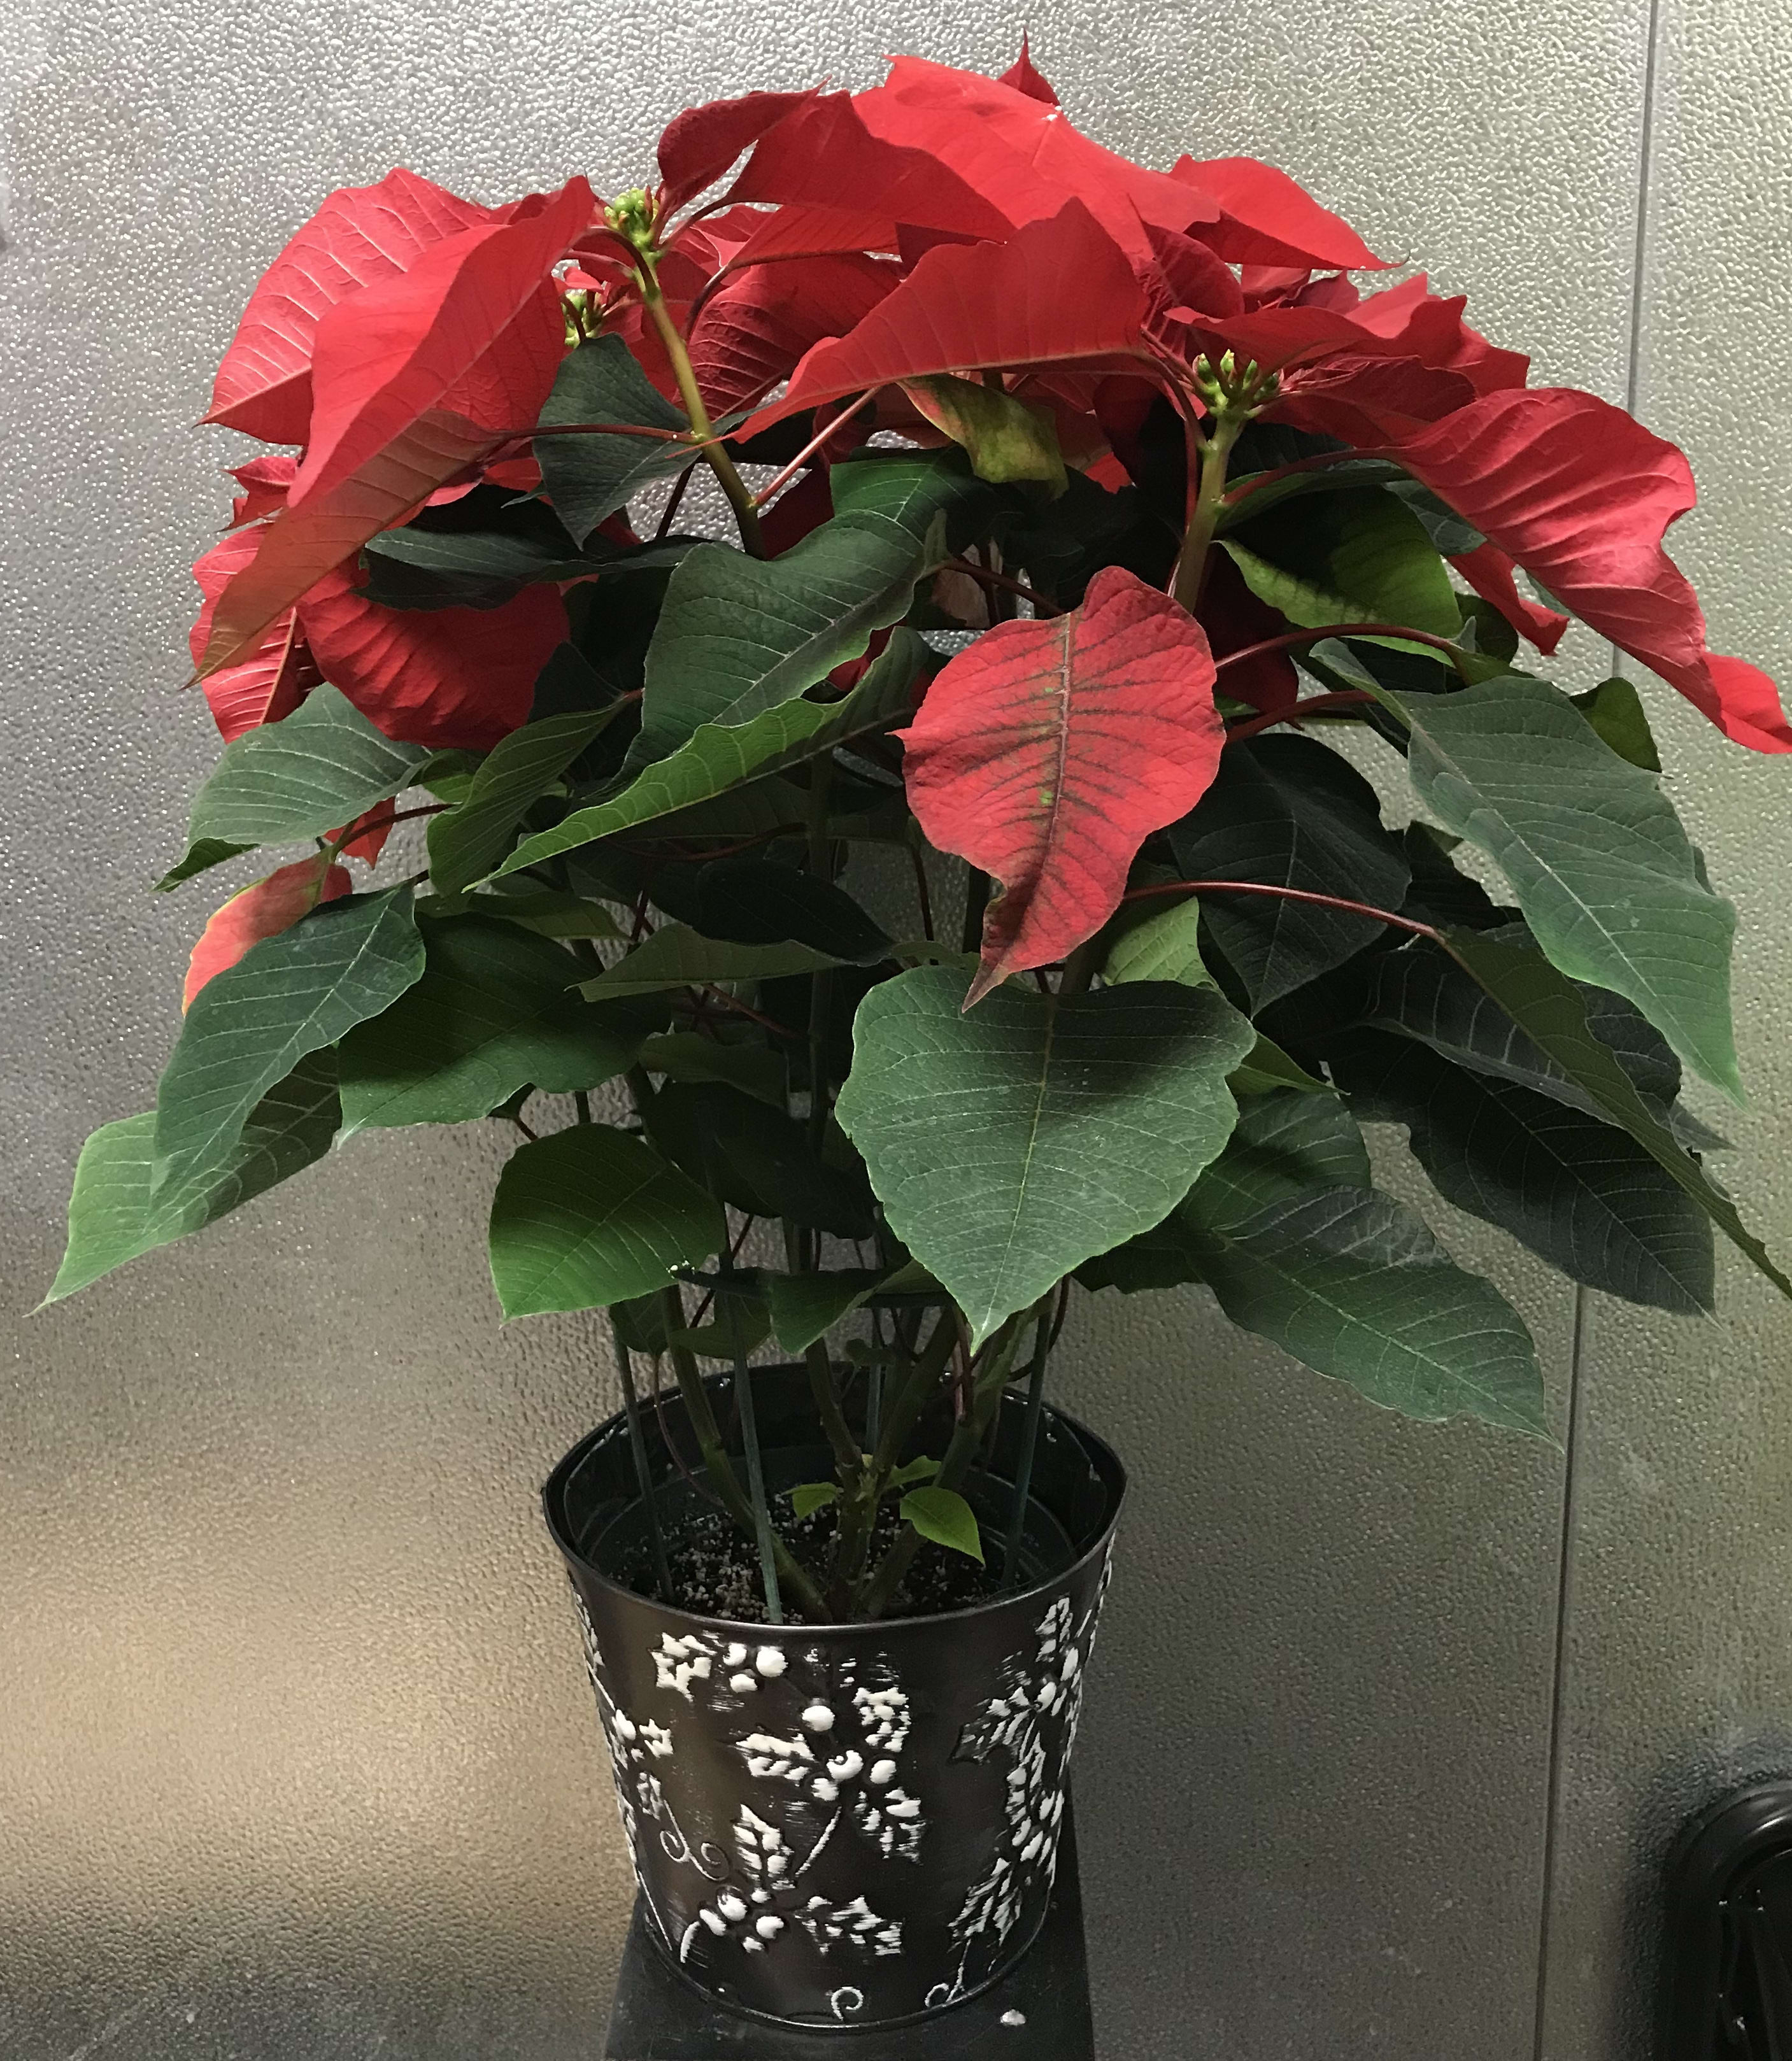 6 Inch Poinsettia Plant In Edwardsville Il A Wildflower Shop